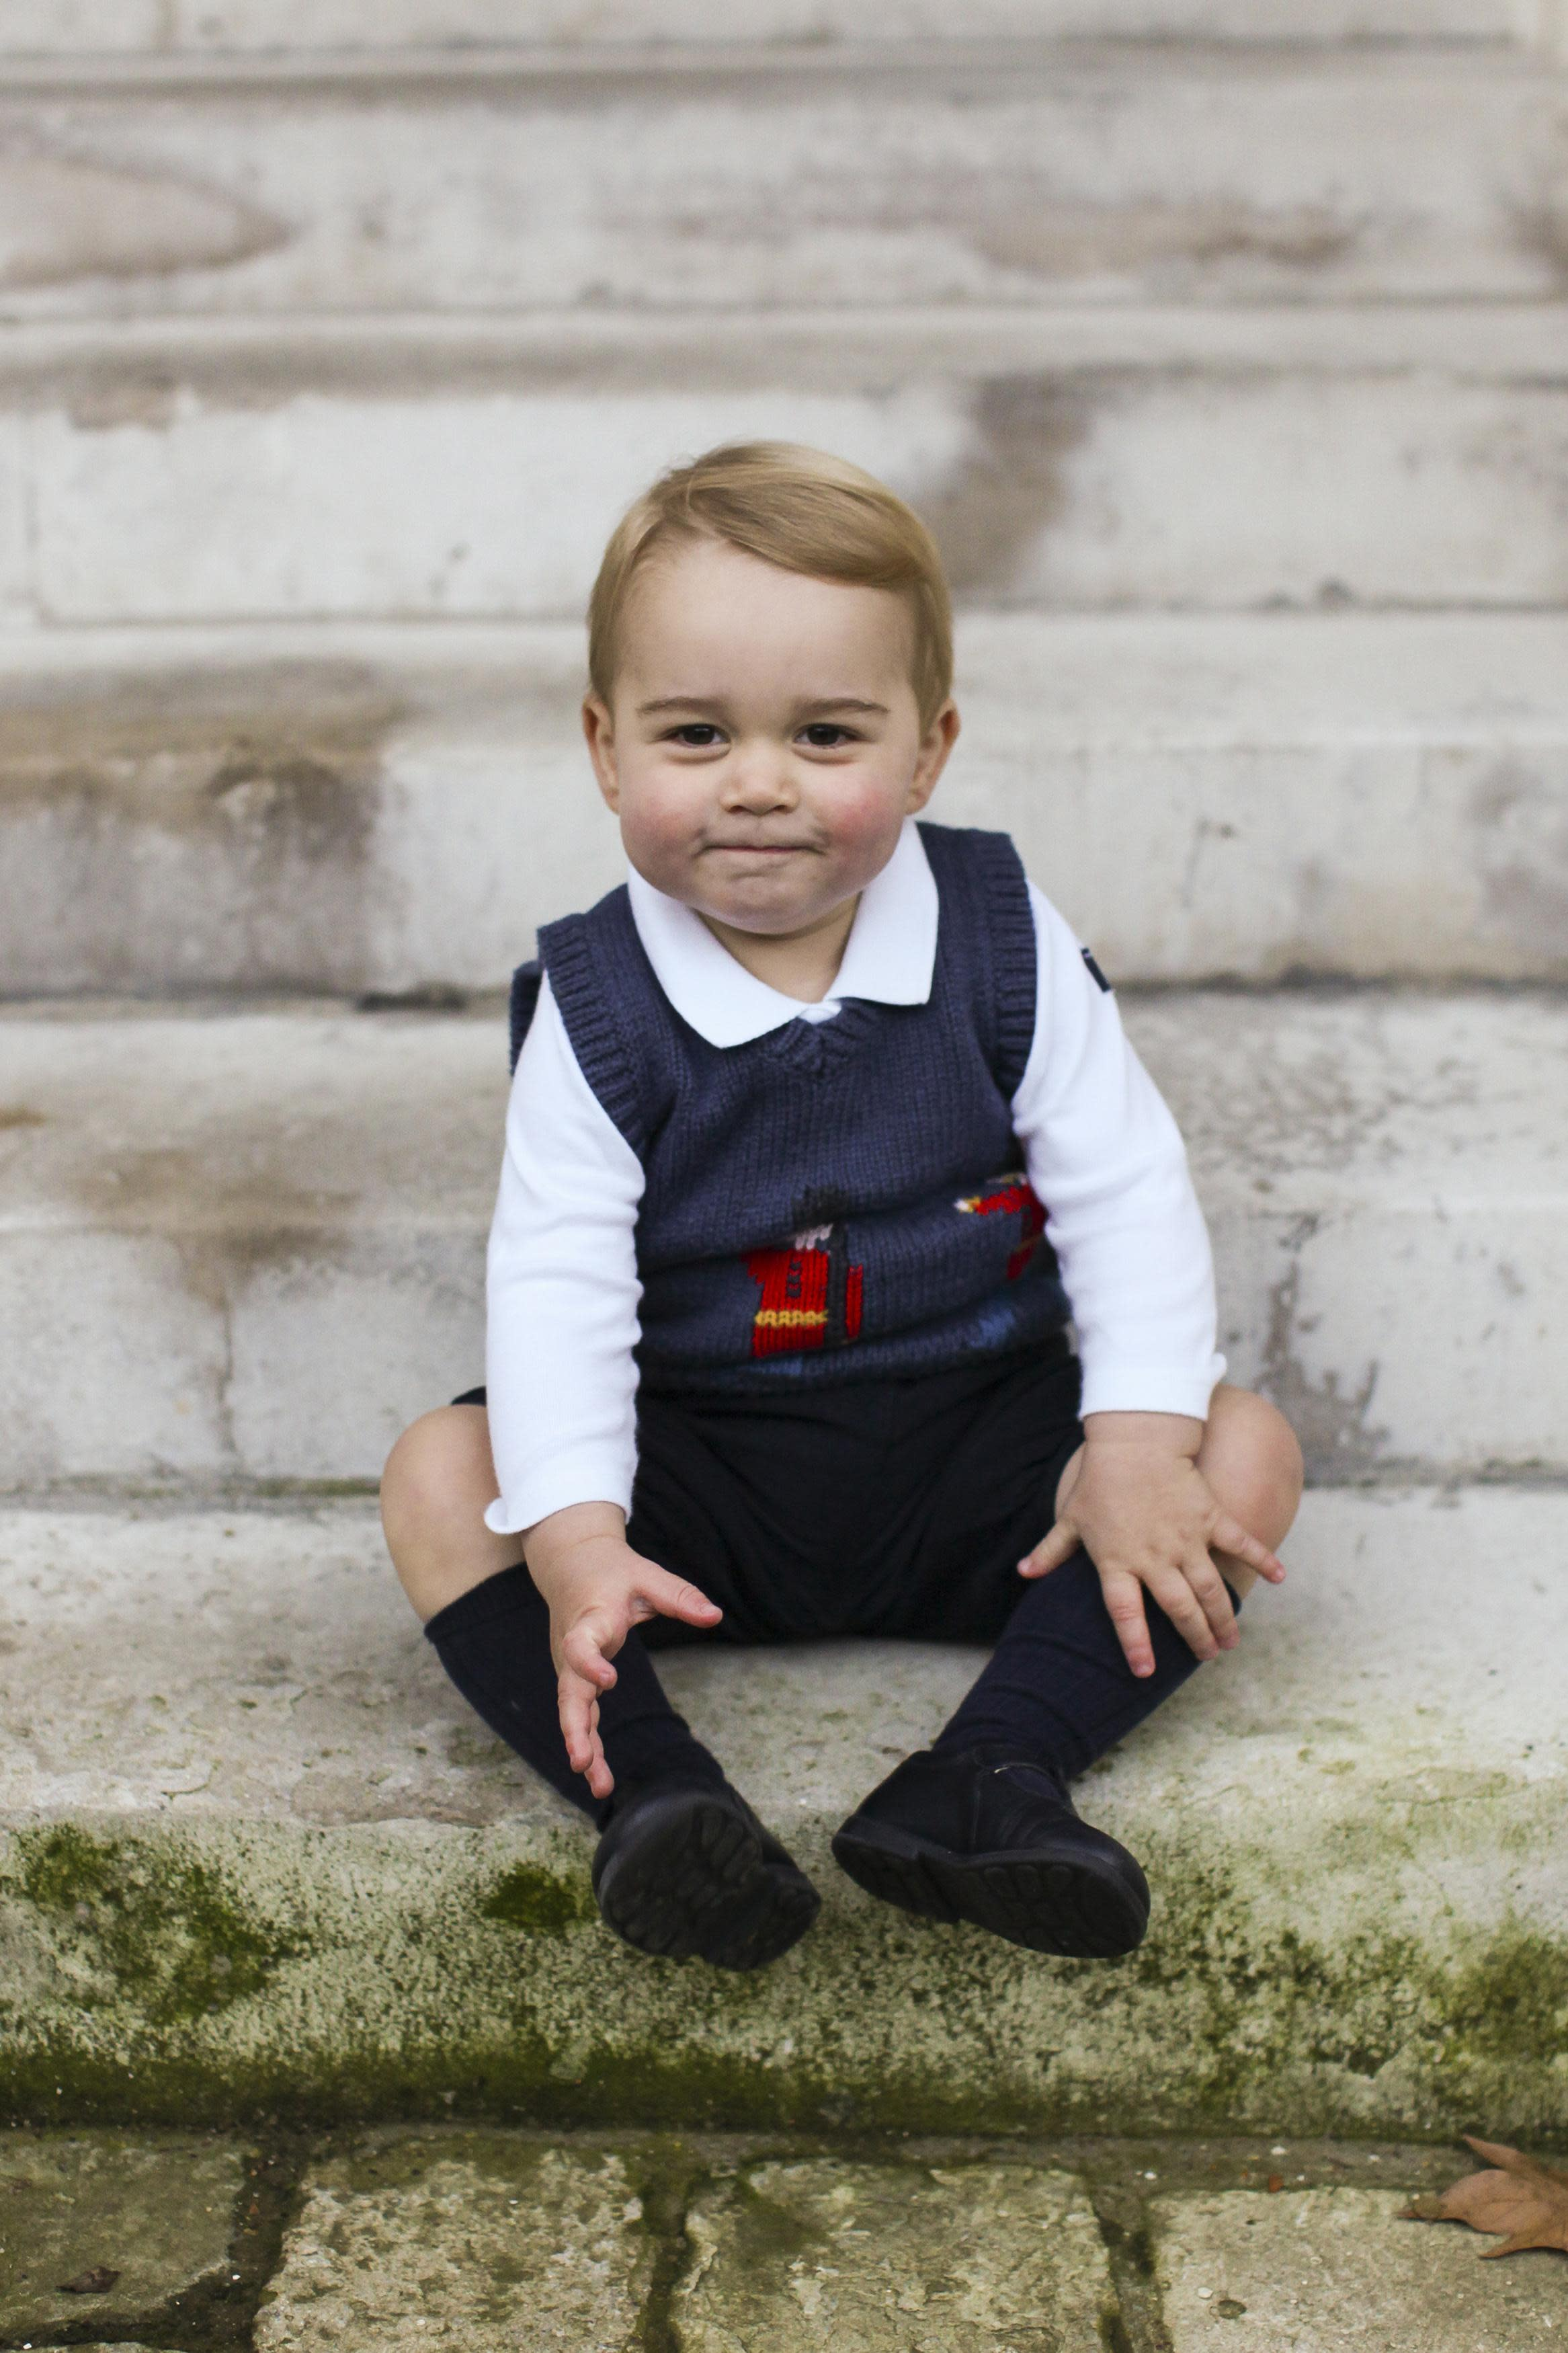 Britain's Prince George poses in a courtyard at Kensington Palace in London in this one out of three official Christmas photographs of him taken in late November and released on December 13, 2014. REUTERS/TRH The Duke and Duchess of Cambridge/Handout via Reuters (BRITAIN - Tags: ROYALS ENTERTAINMENT SOCIETY) ATTENTION EDITORS - THIS PICTURE WAS PROVIDED BY A THIRD PARTY. REUTERS IS UNABLE TO INDEPENDENTLY VERIFY THE AUTHENTICITY, CONTENT, LOCATION OR DATE OF THIS IMAGE. FOR EDITORIAL USE ONLY. NOT FOR SALE FOR MARKETING OR ADVERTISING CAMPAIGNS. THIS PICTURE IS DISTRIBUTED EXACTLY AS RECEIVED BY REUTERS, AS A SERVICE TO CLIENTS. NO SALES. NO ARCHIVES